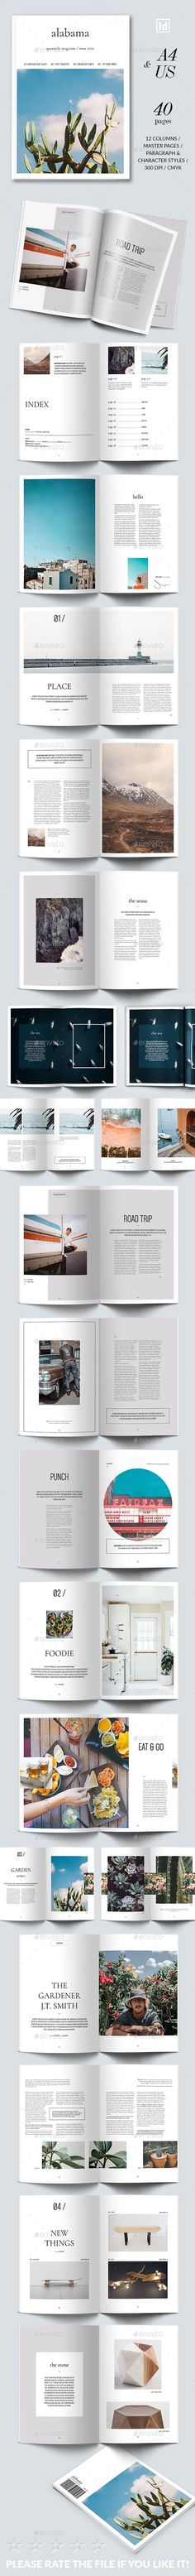 Alabama Magazine Template InDesign INDD